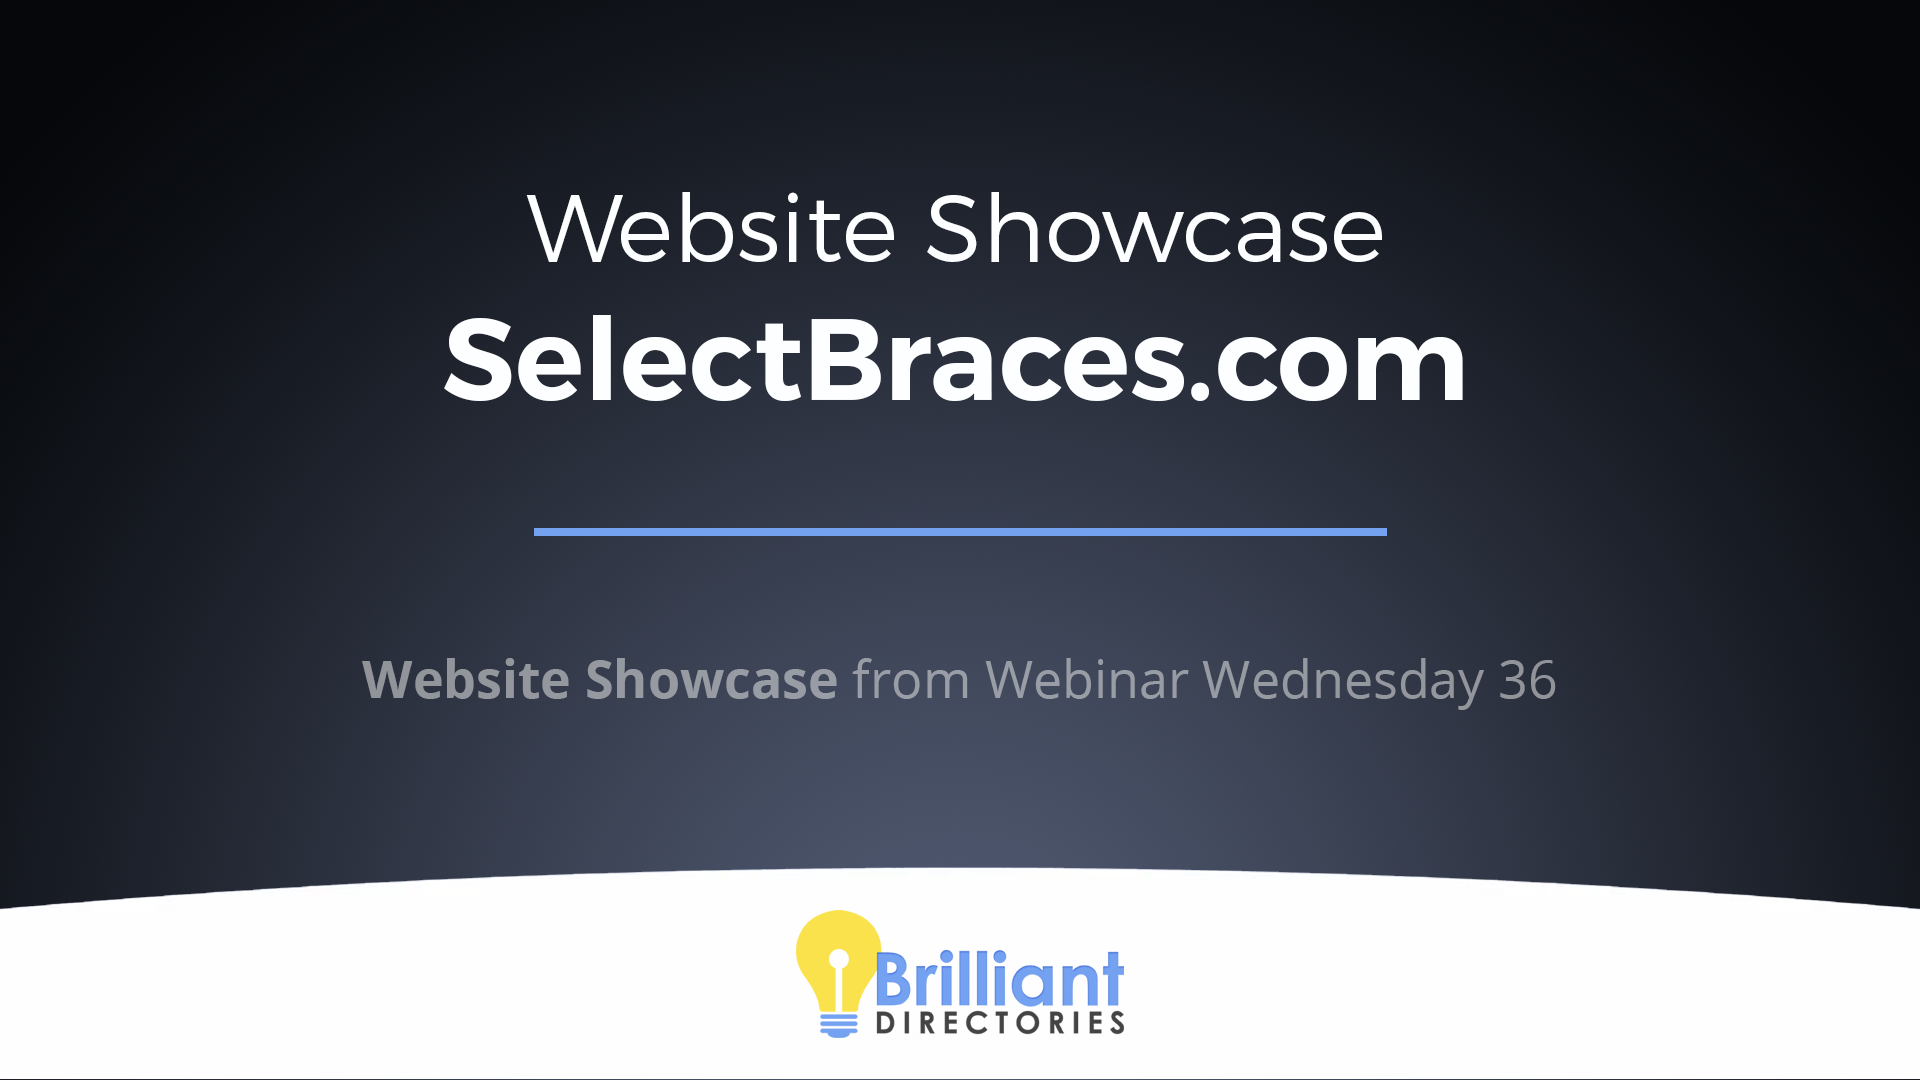 https://www.brilliantdirectories.com/blog/case-study-orthodontist-directory-powered-by-brilliant-directories